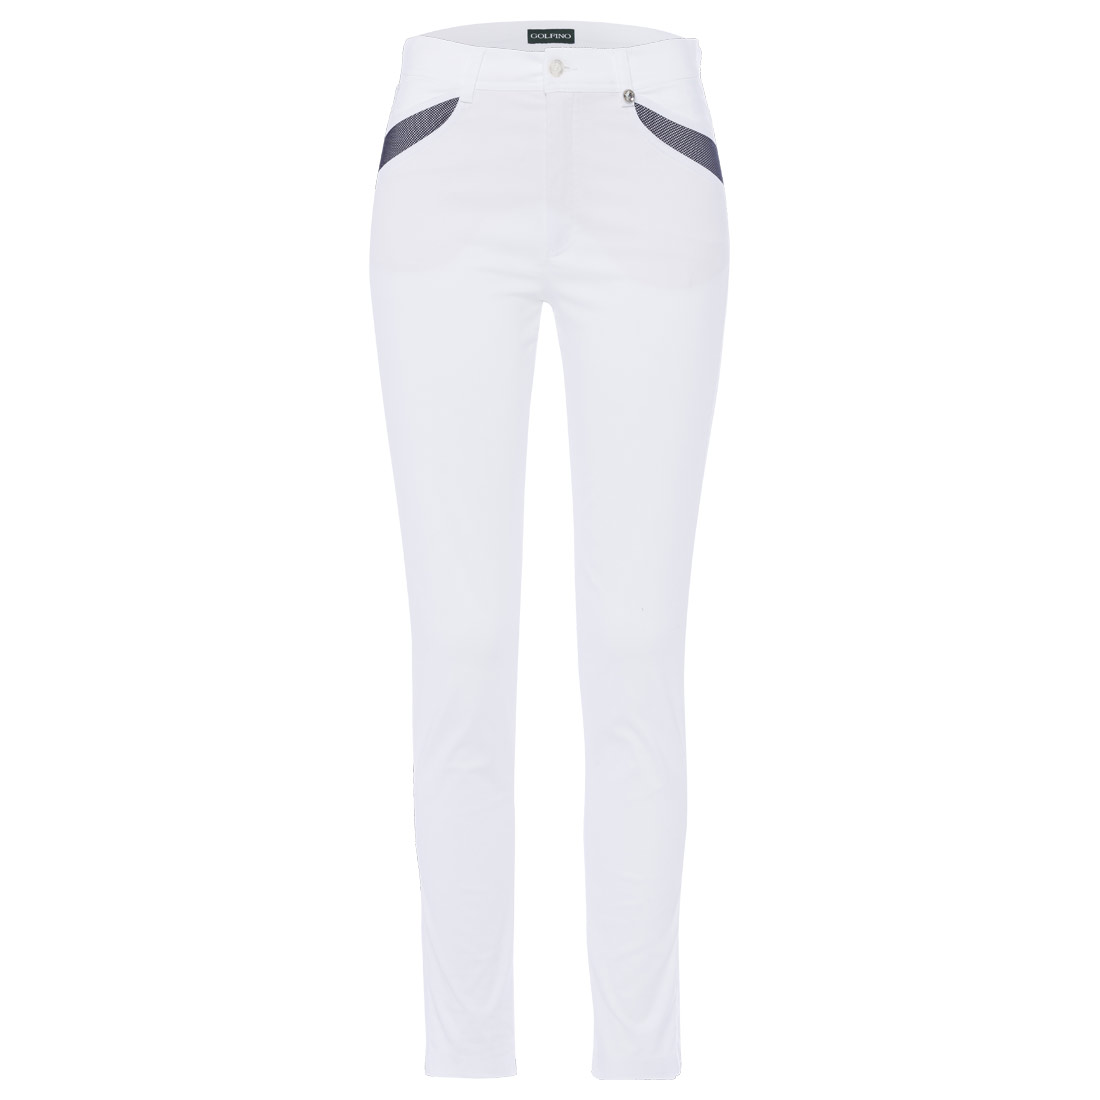 Ladies' trousers with mesh inserts